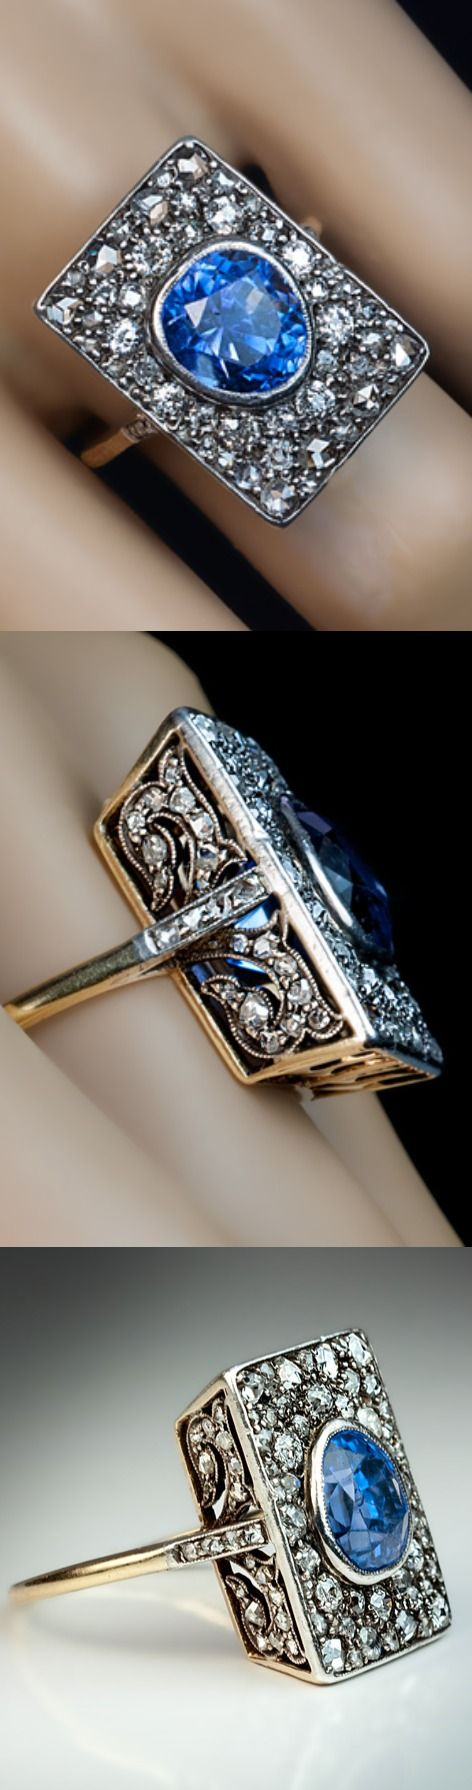 Intricate ornate Sapphire Diamond Engagement Ring